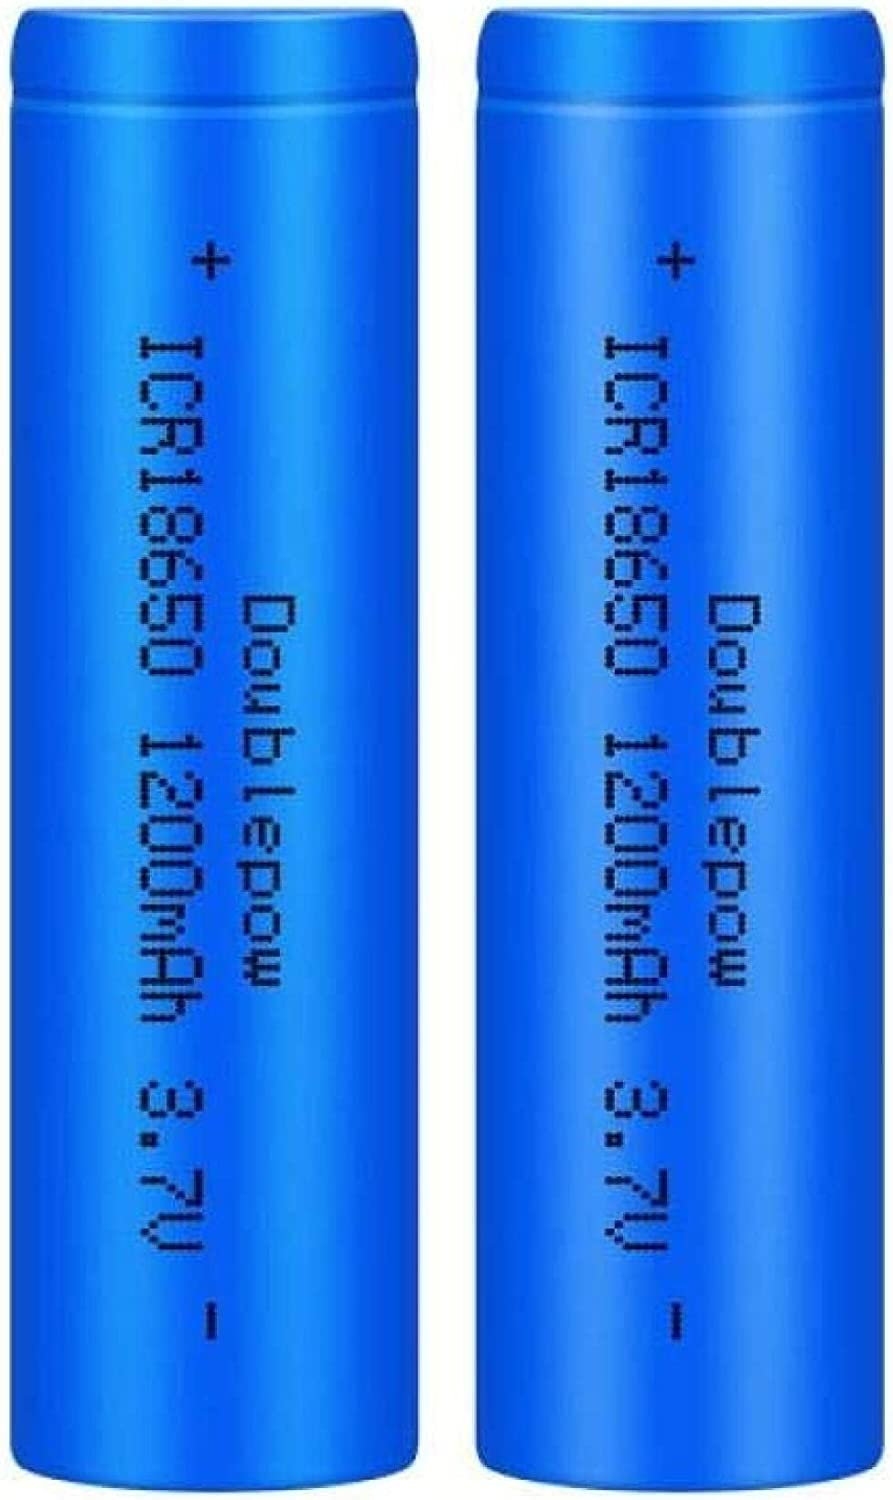 trust 3.7V 1200mAh 18650 Rechargeable Lithium Batteries- Battery Max 52% OFF